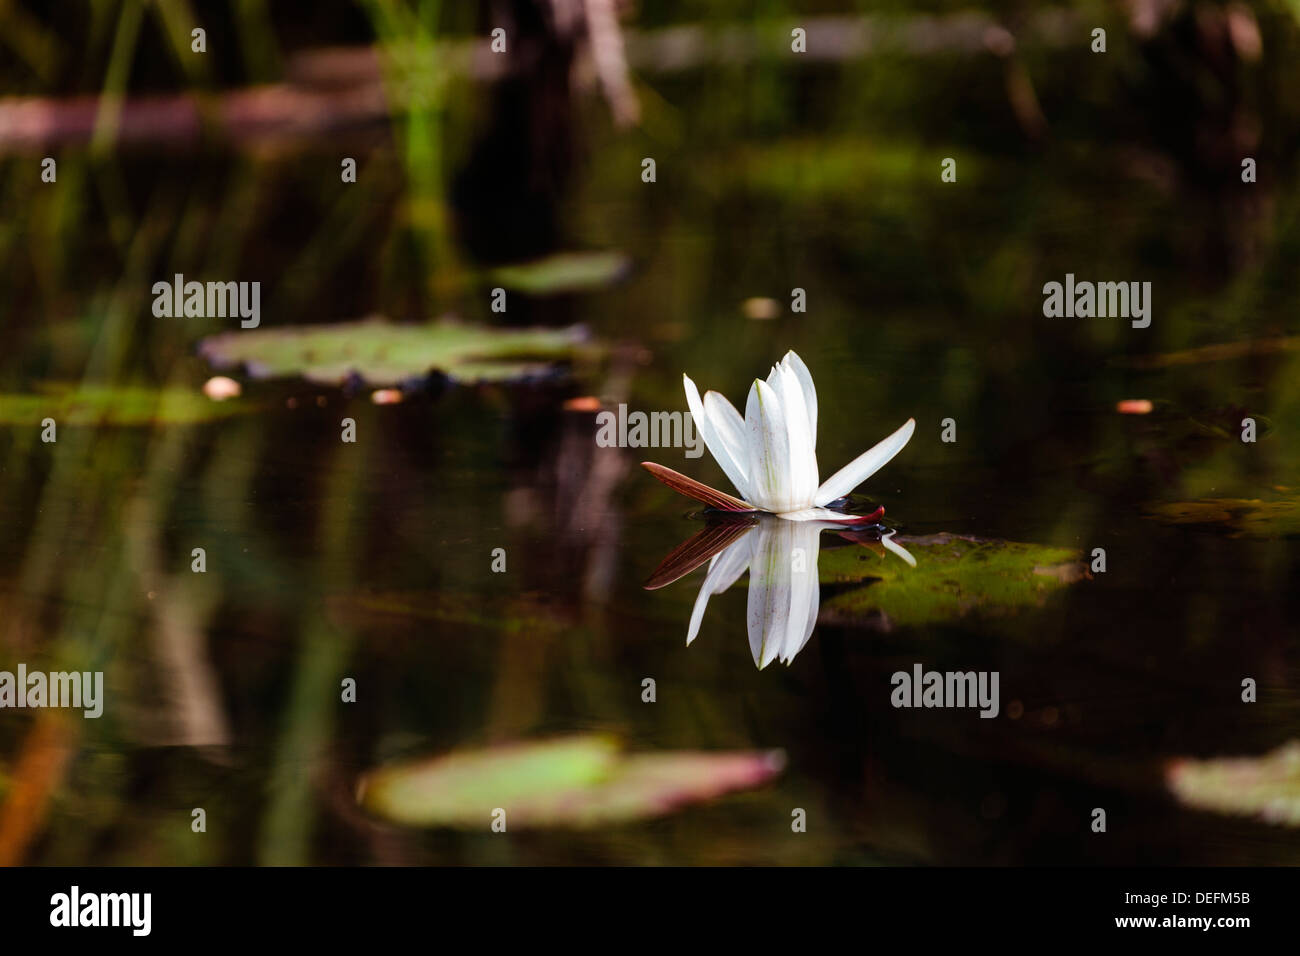 Africa, Liberia, Monrovia. Lily in bloom on the Du River. - Stock Image